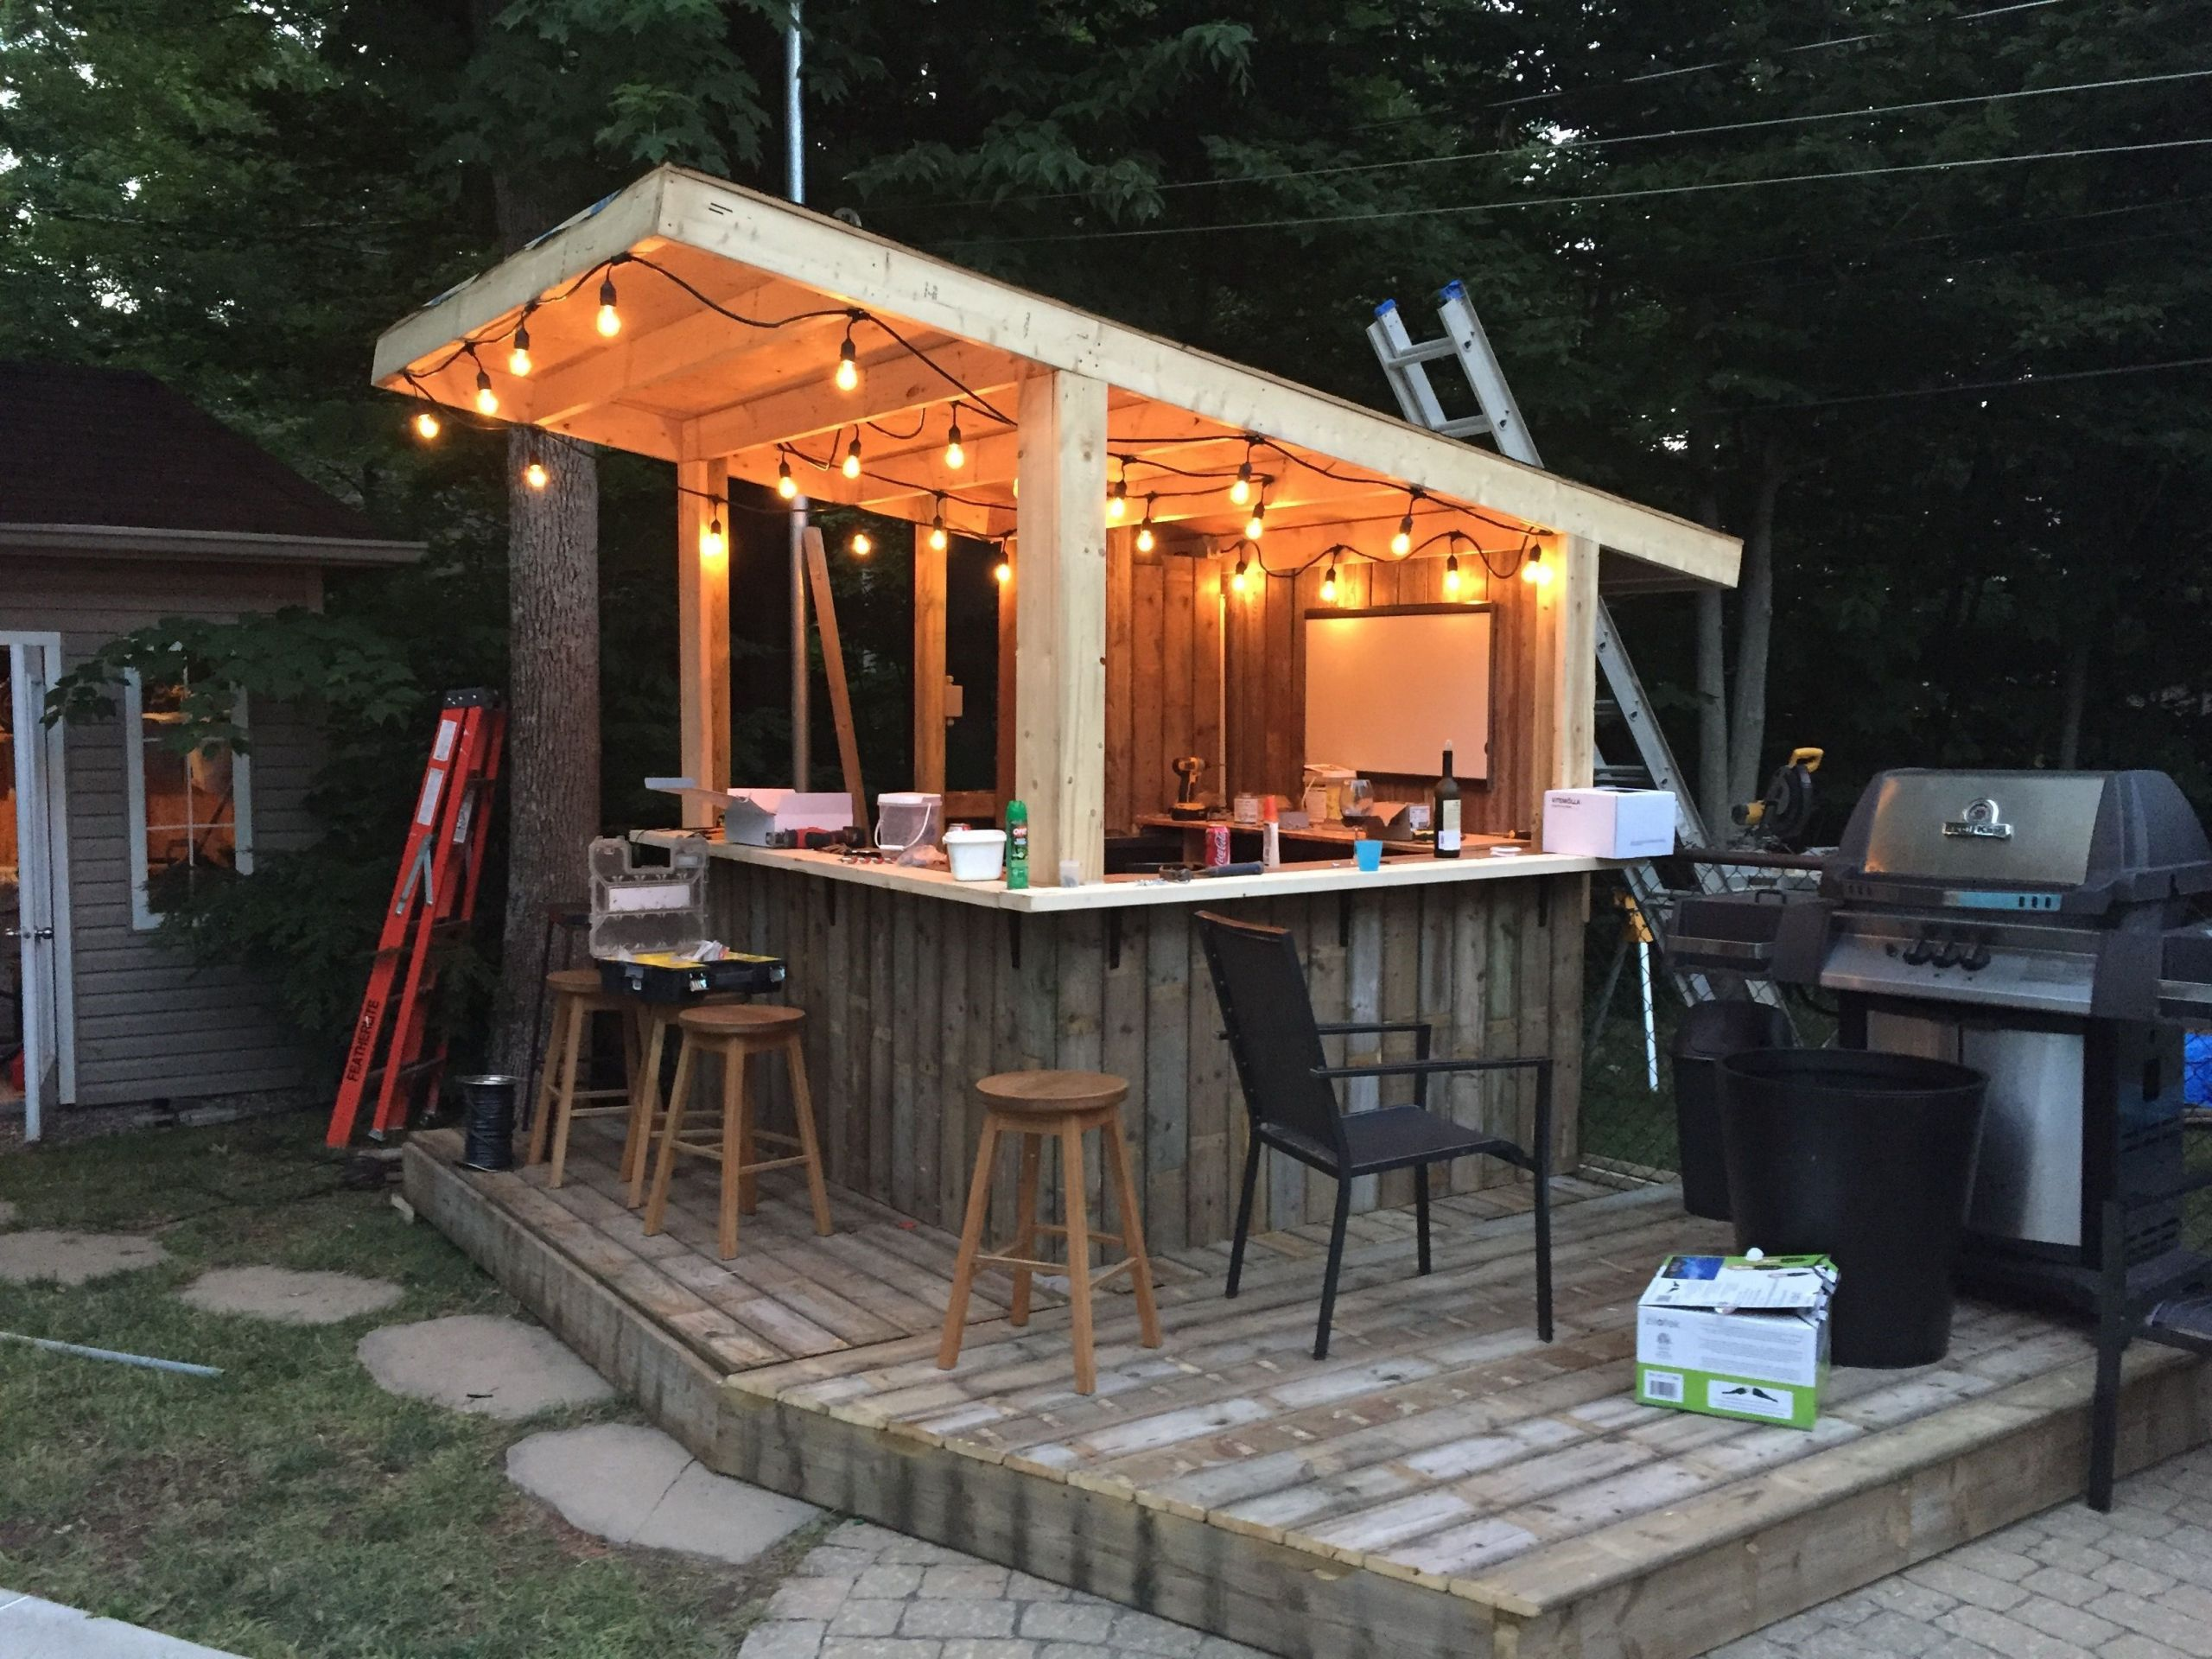 Bar De Jardin En Bois Frais Shed Diy Tiki Bar Backyard Pool Bar Built with Old Patio Of 36 Luxe Bar De Jardin En Bois